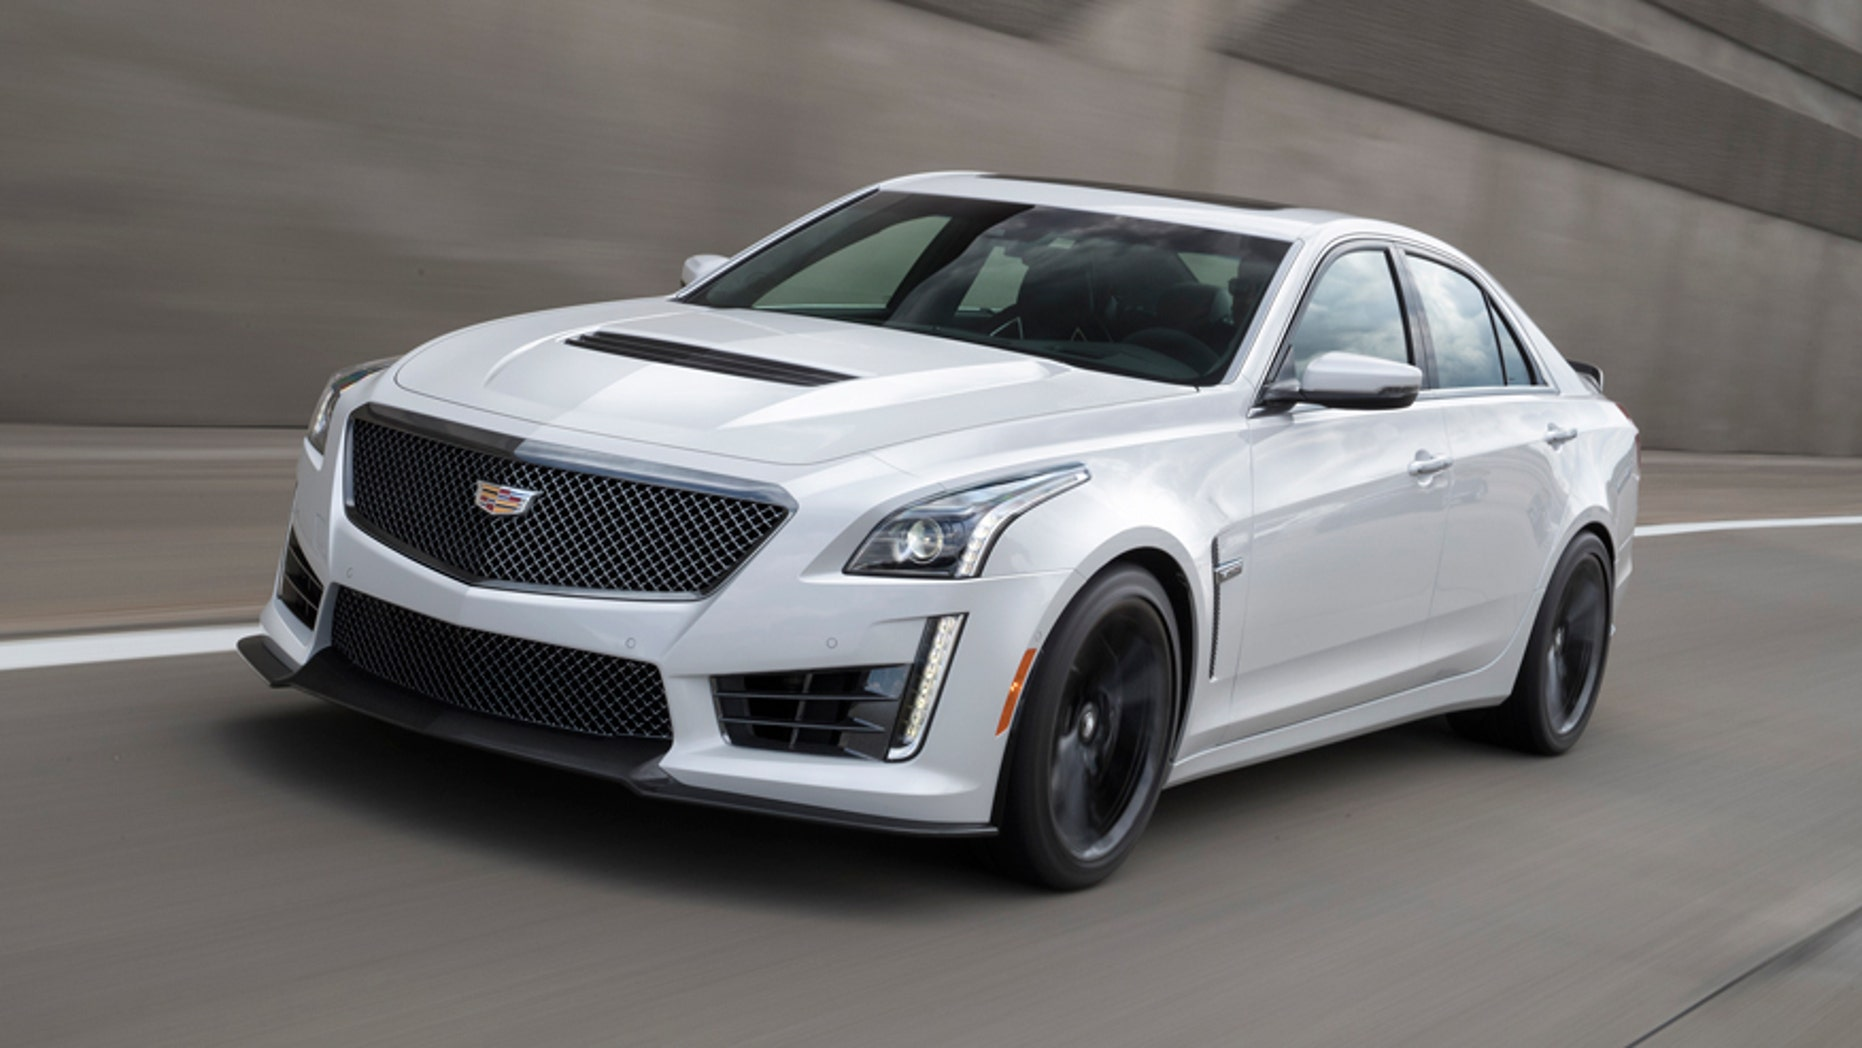 Most Powerful American Cars-2016 Cadillac CTS-V